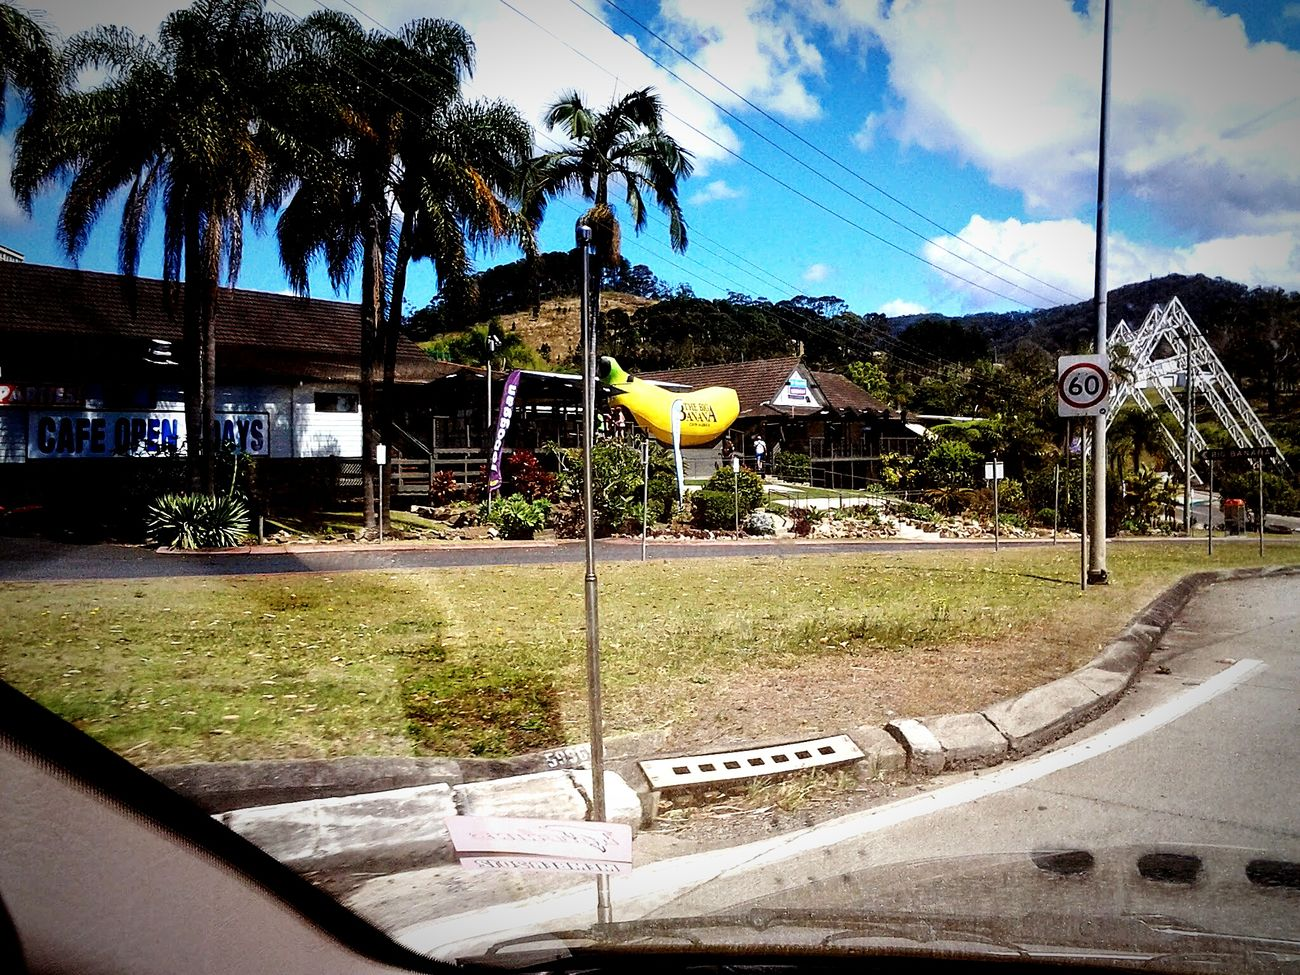 The Journey Is The Destination Travelling Coffsharbour Big Banana Great Picture Traveling Through Town Beautiful Scenery ❤❤❤